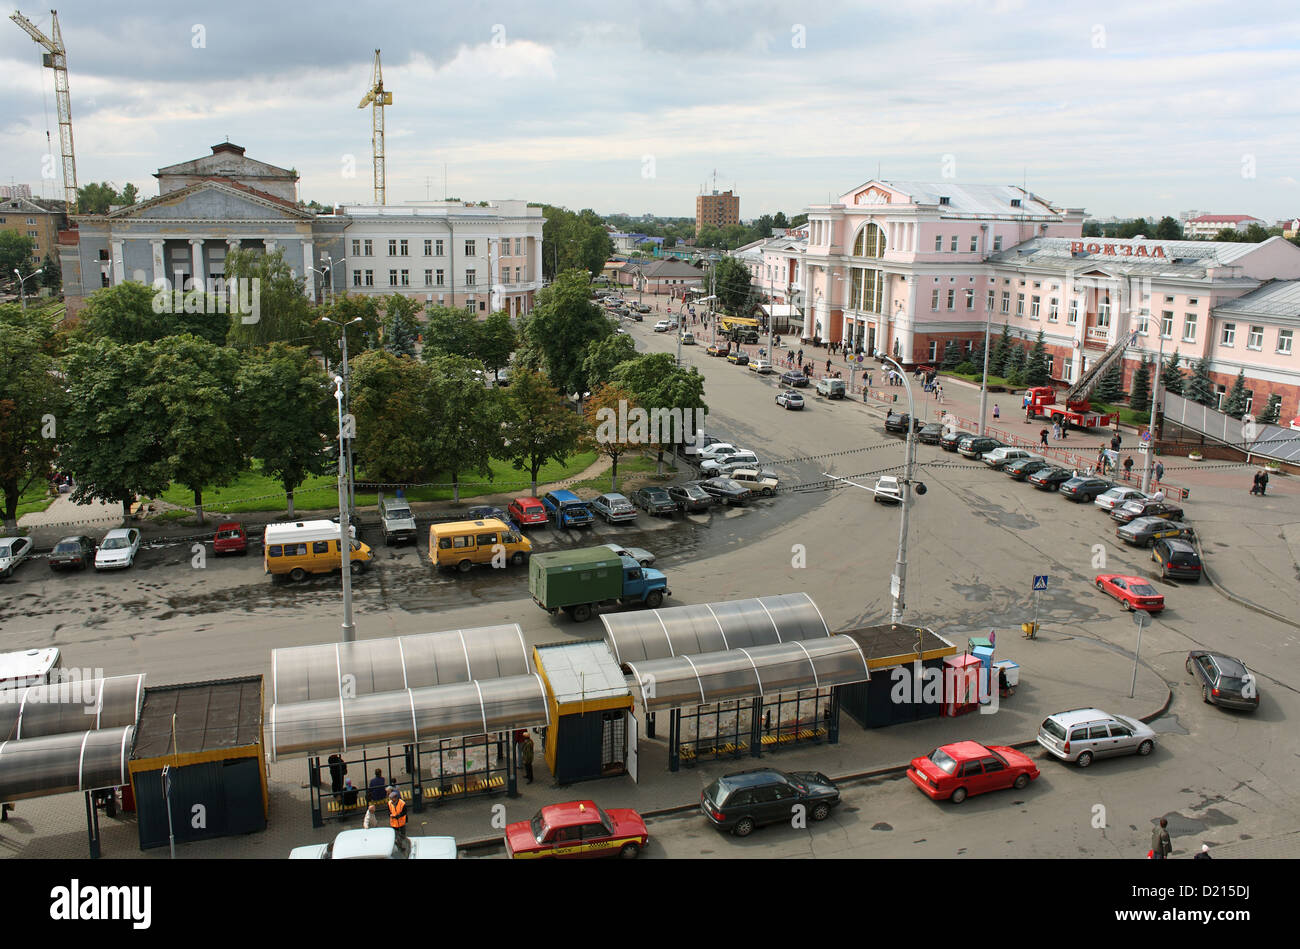 Where is the city of Gomel